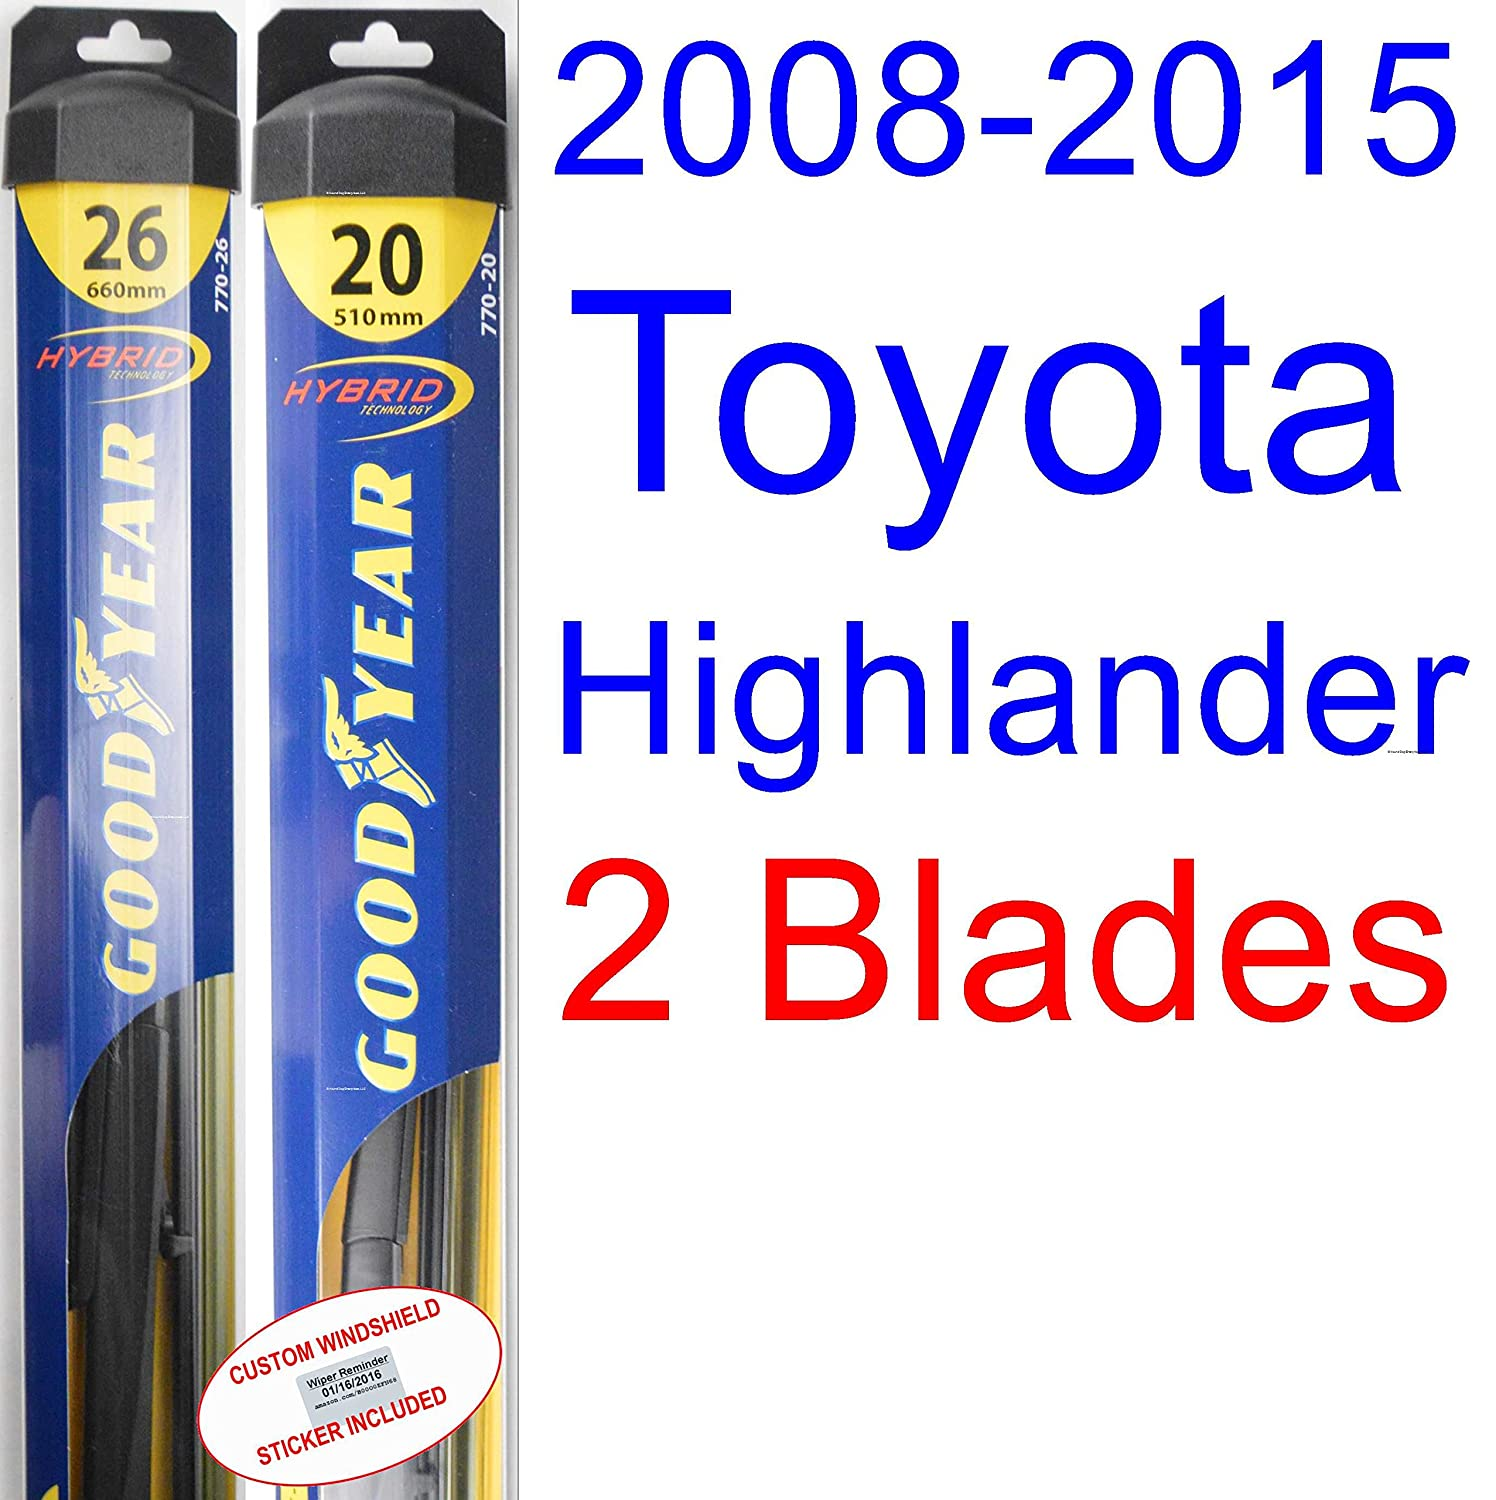 Amazon.com: 2008-2015 Toyota Highlander Replacement Wiper Blade Set/Kit (Set of 2 Blades) (Goodyear Wiper Blades-Hybrid) (2009,2010,2011,2012,2013,2014): ...